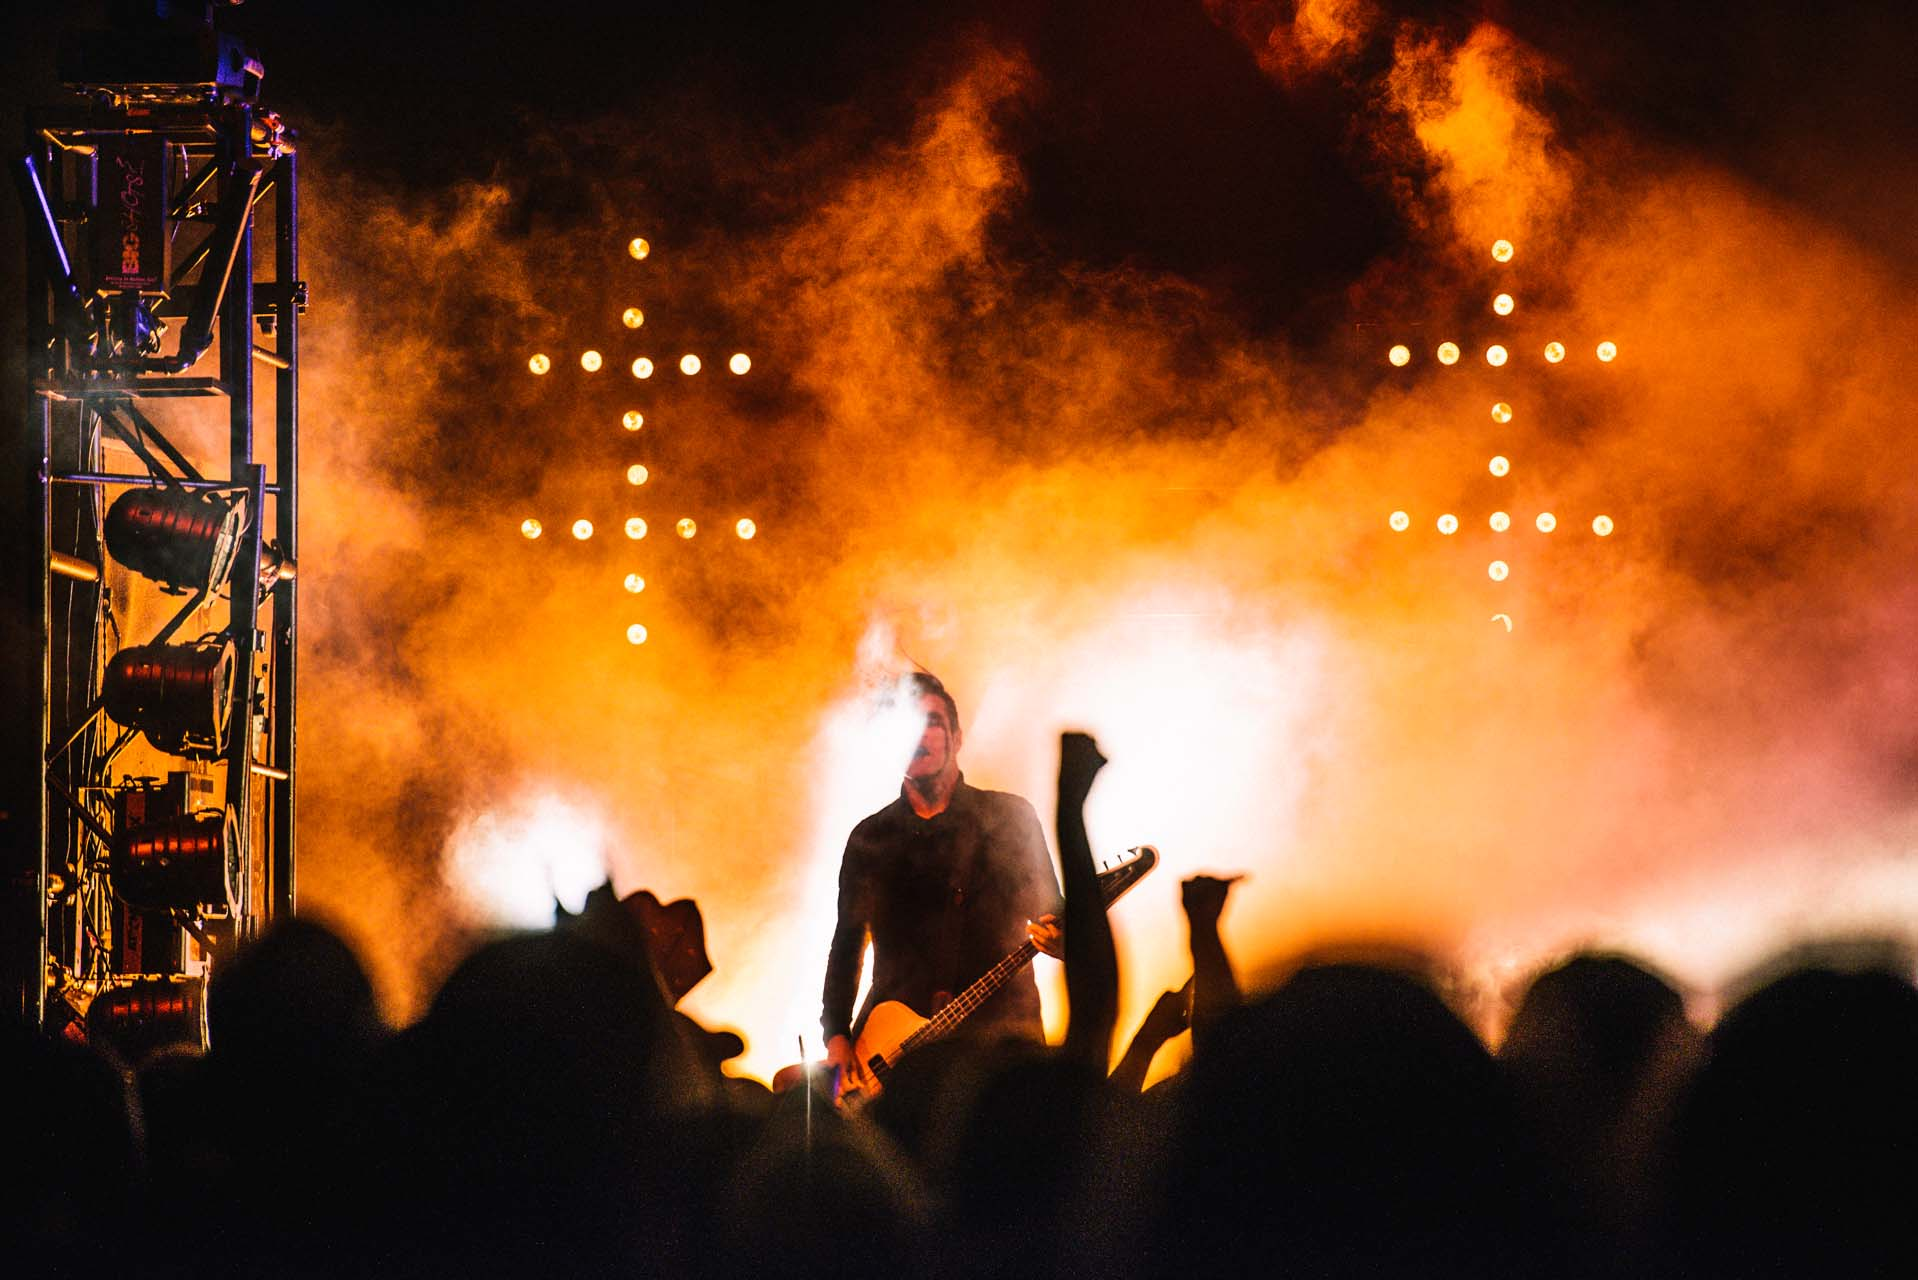 marilyn_manson_live_egyptian_room_indianapolis_2013-38